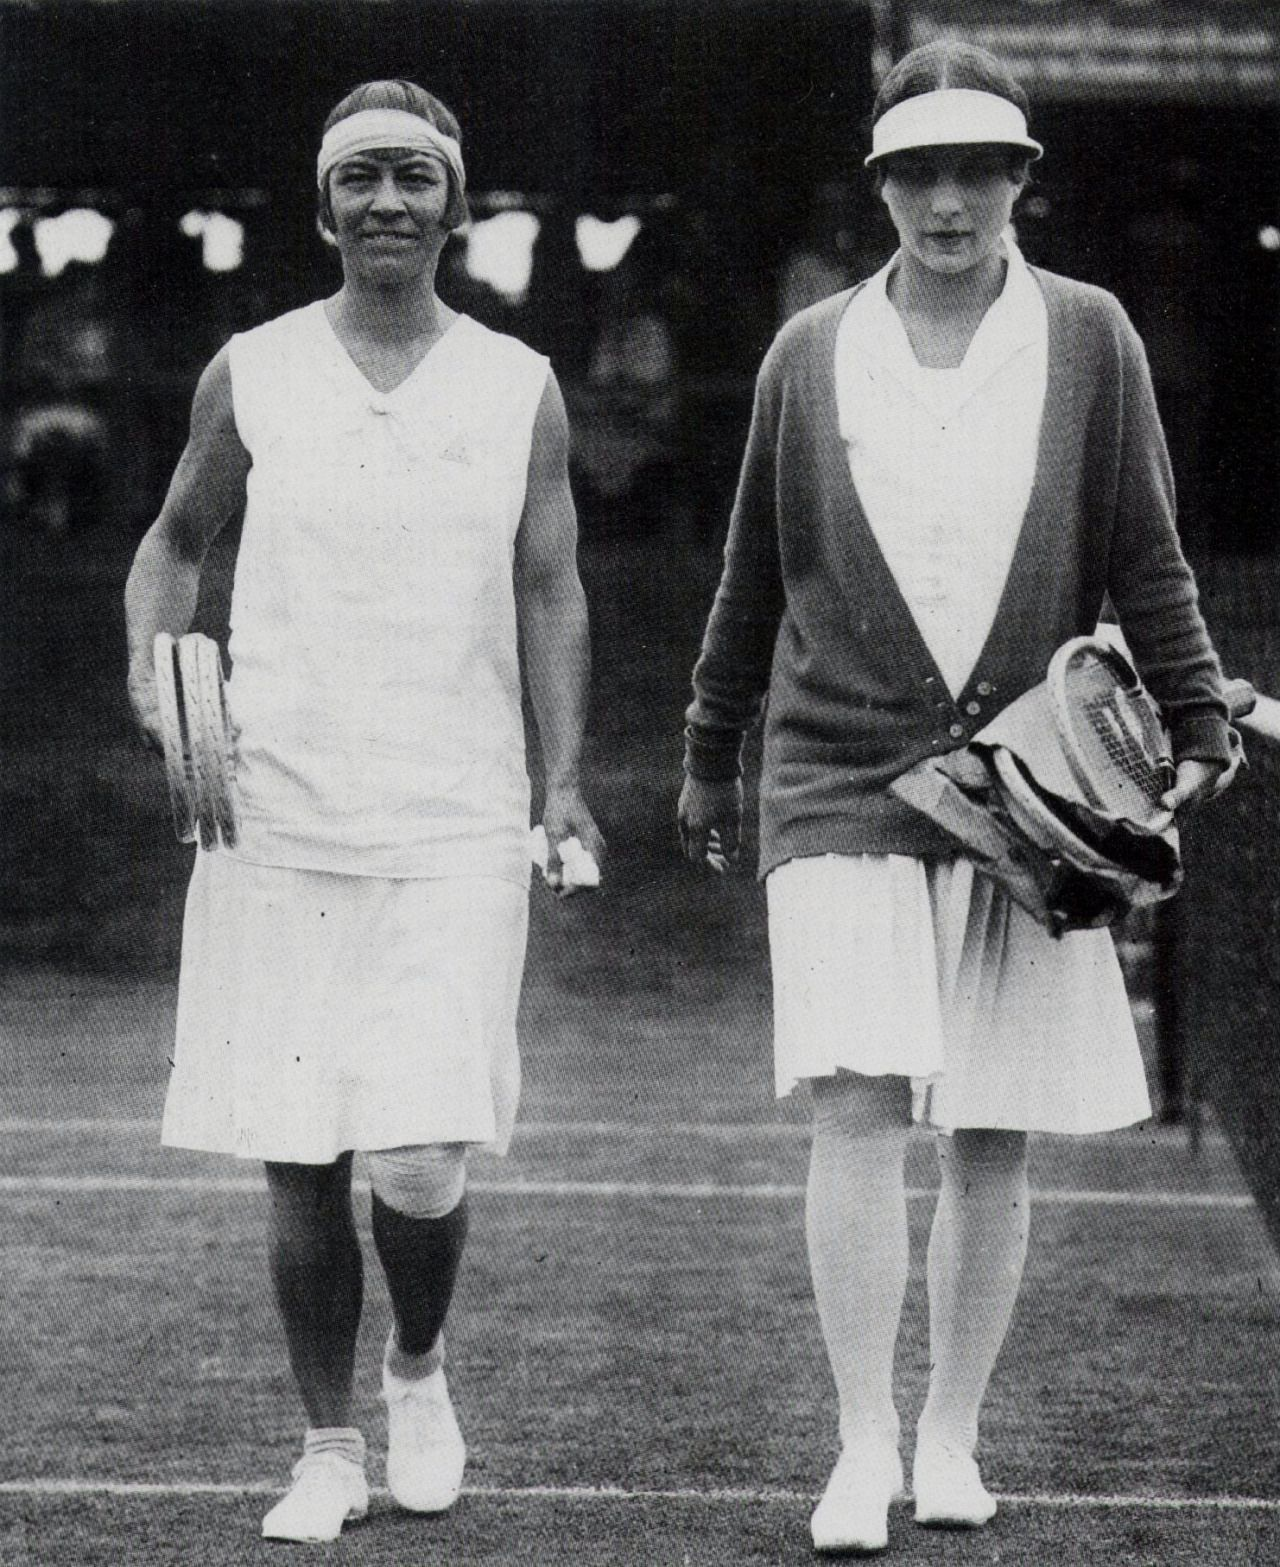 Molla Mallory and Helen Wills walk on court at the US